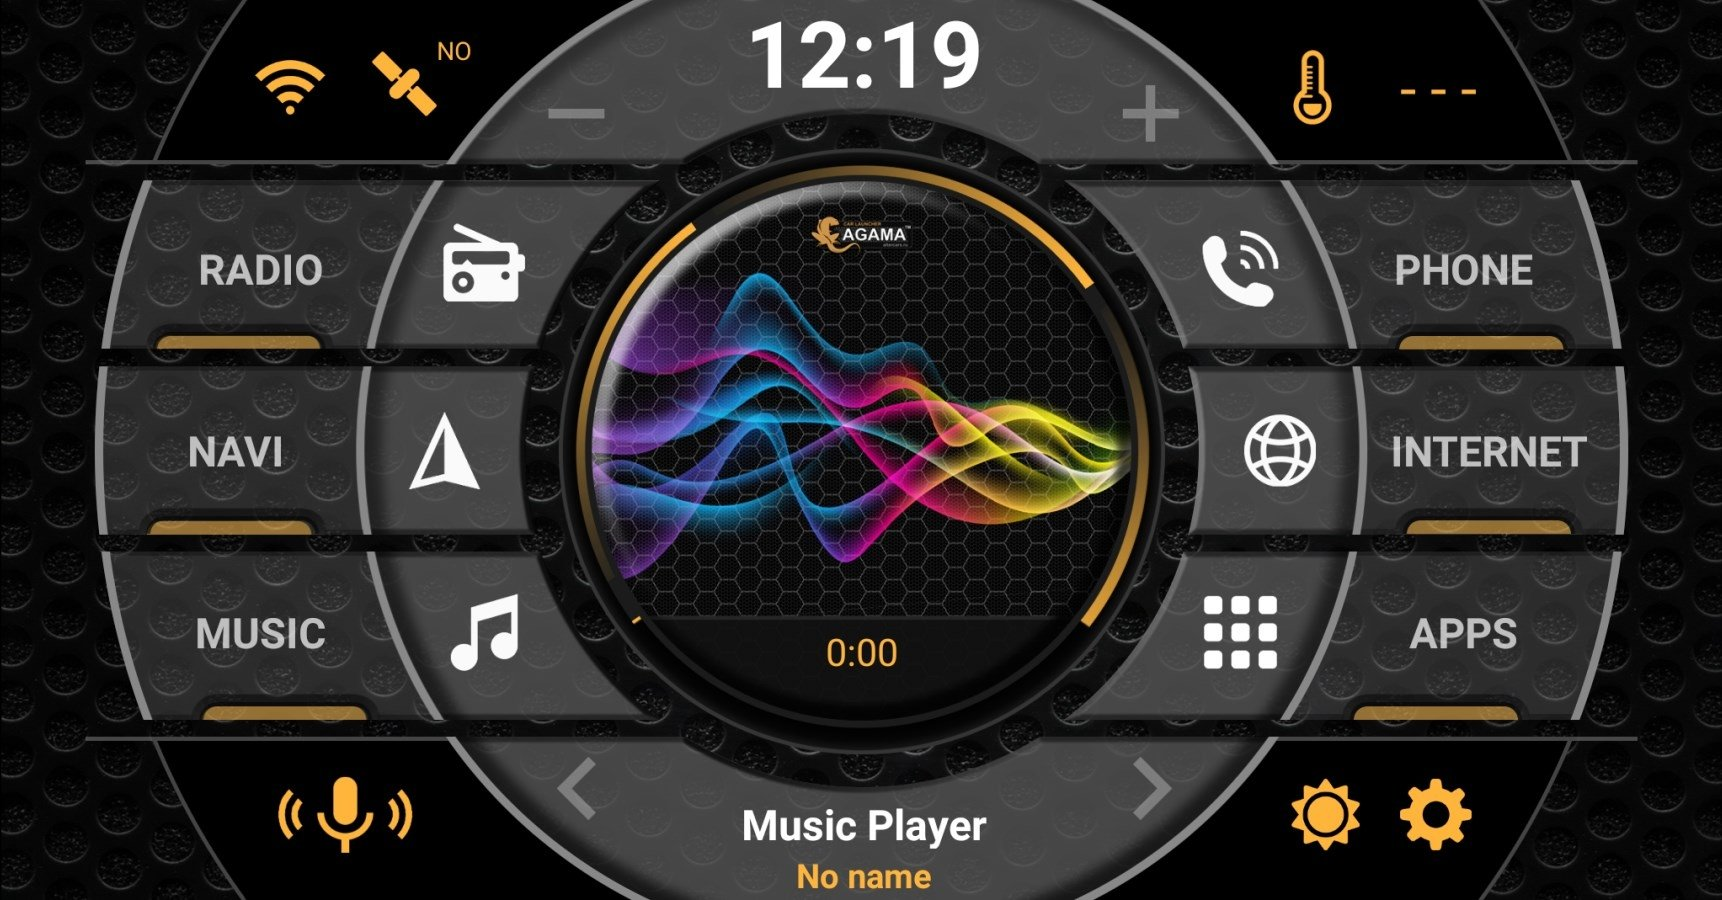 Car Launcher AGAMA 2 3 4 - Download for Android APK Free